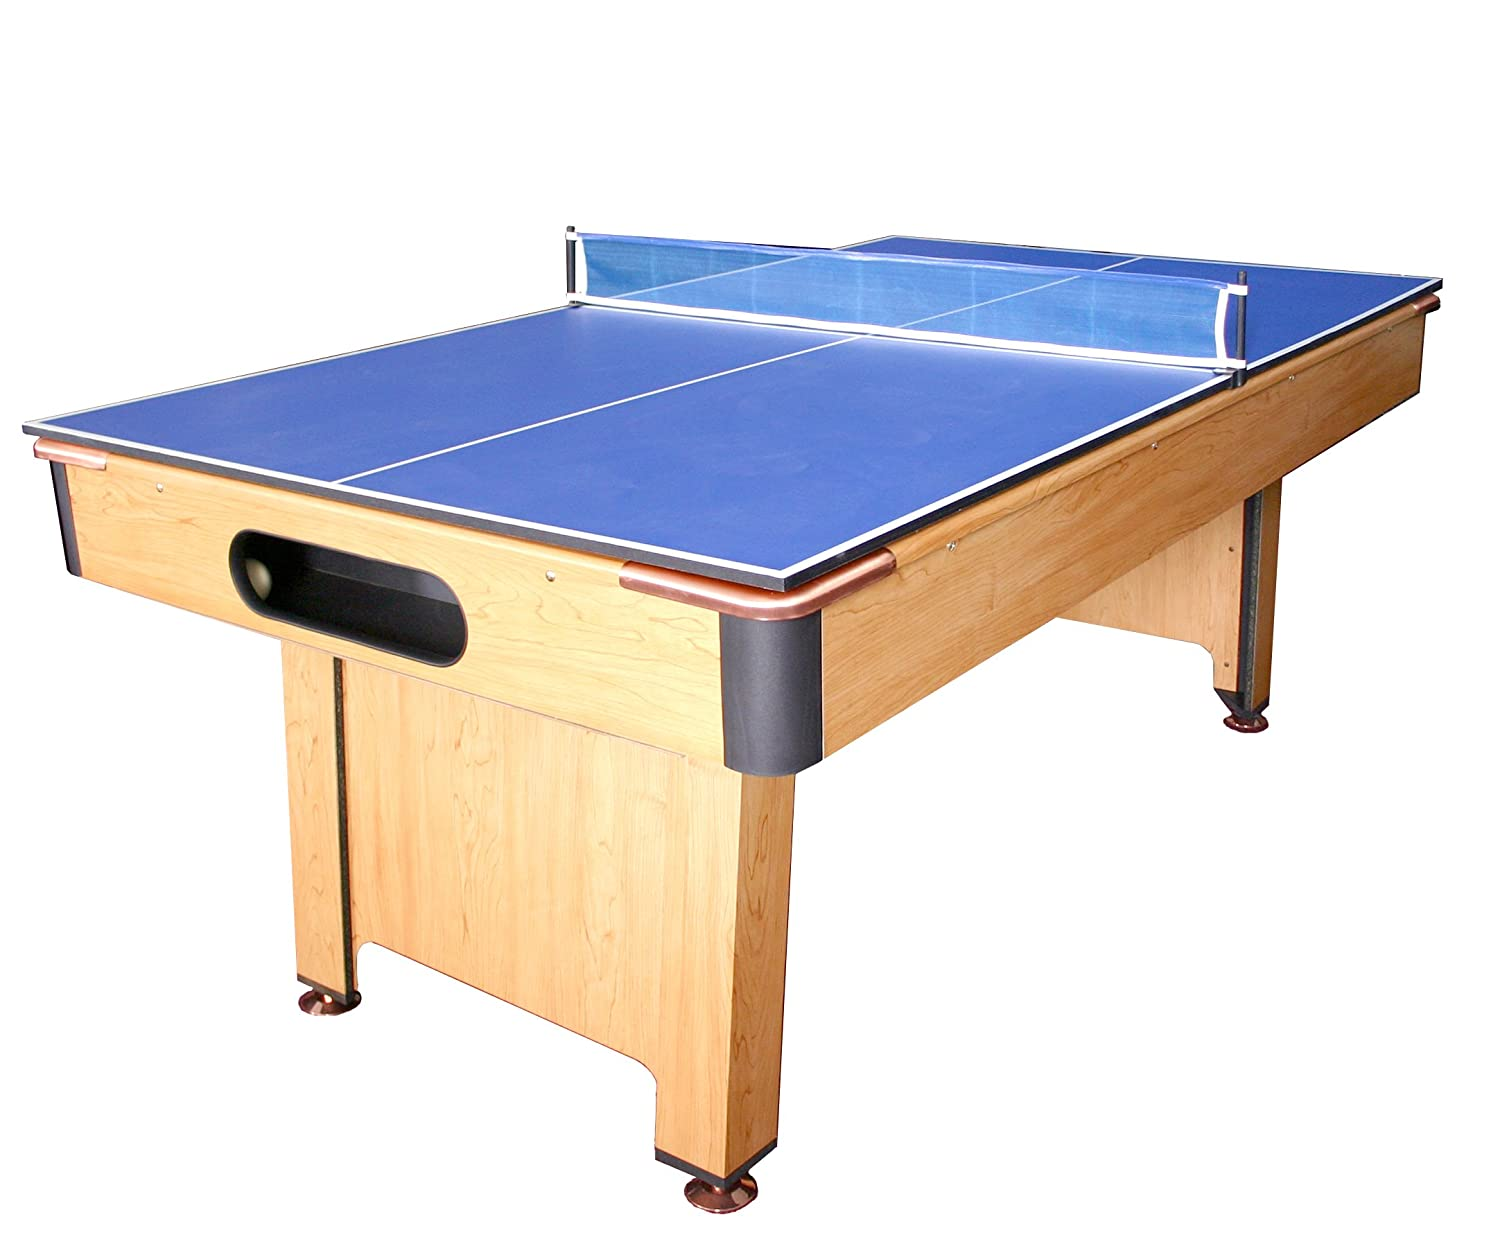 Amazoncom Minnesota Fats MFT200CT Fairfax Billiard Table with